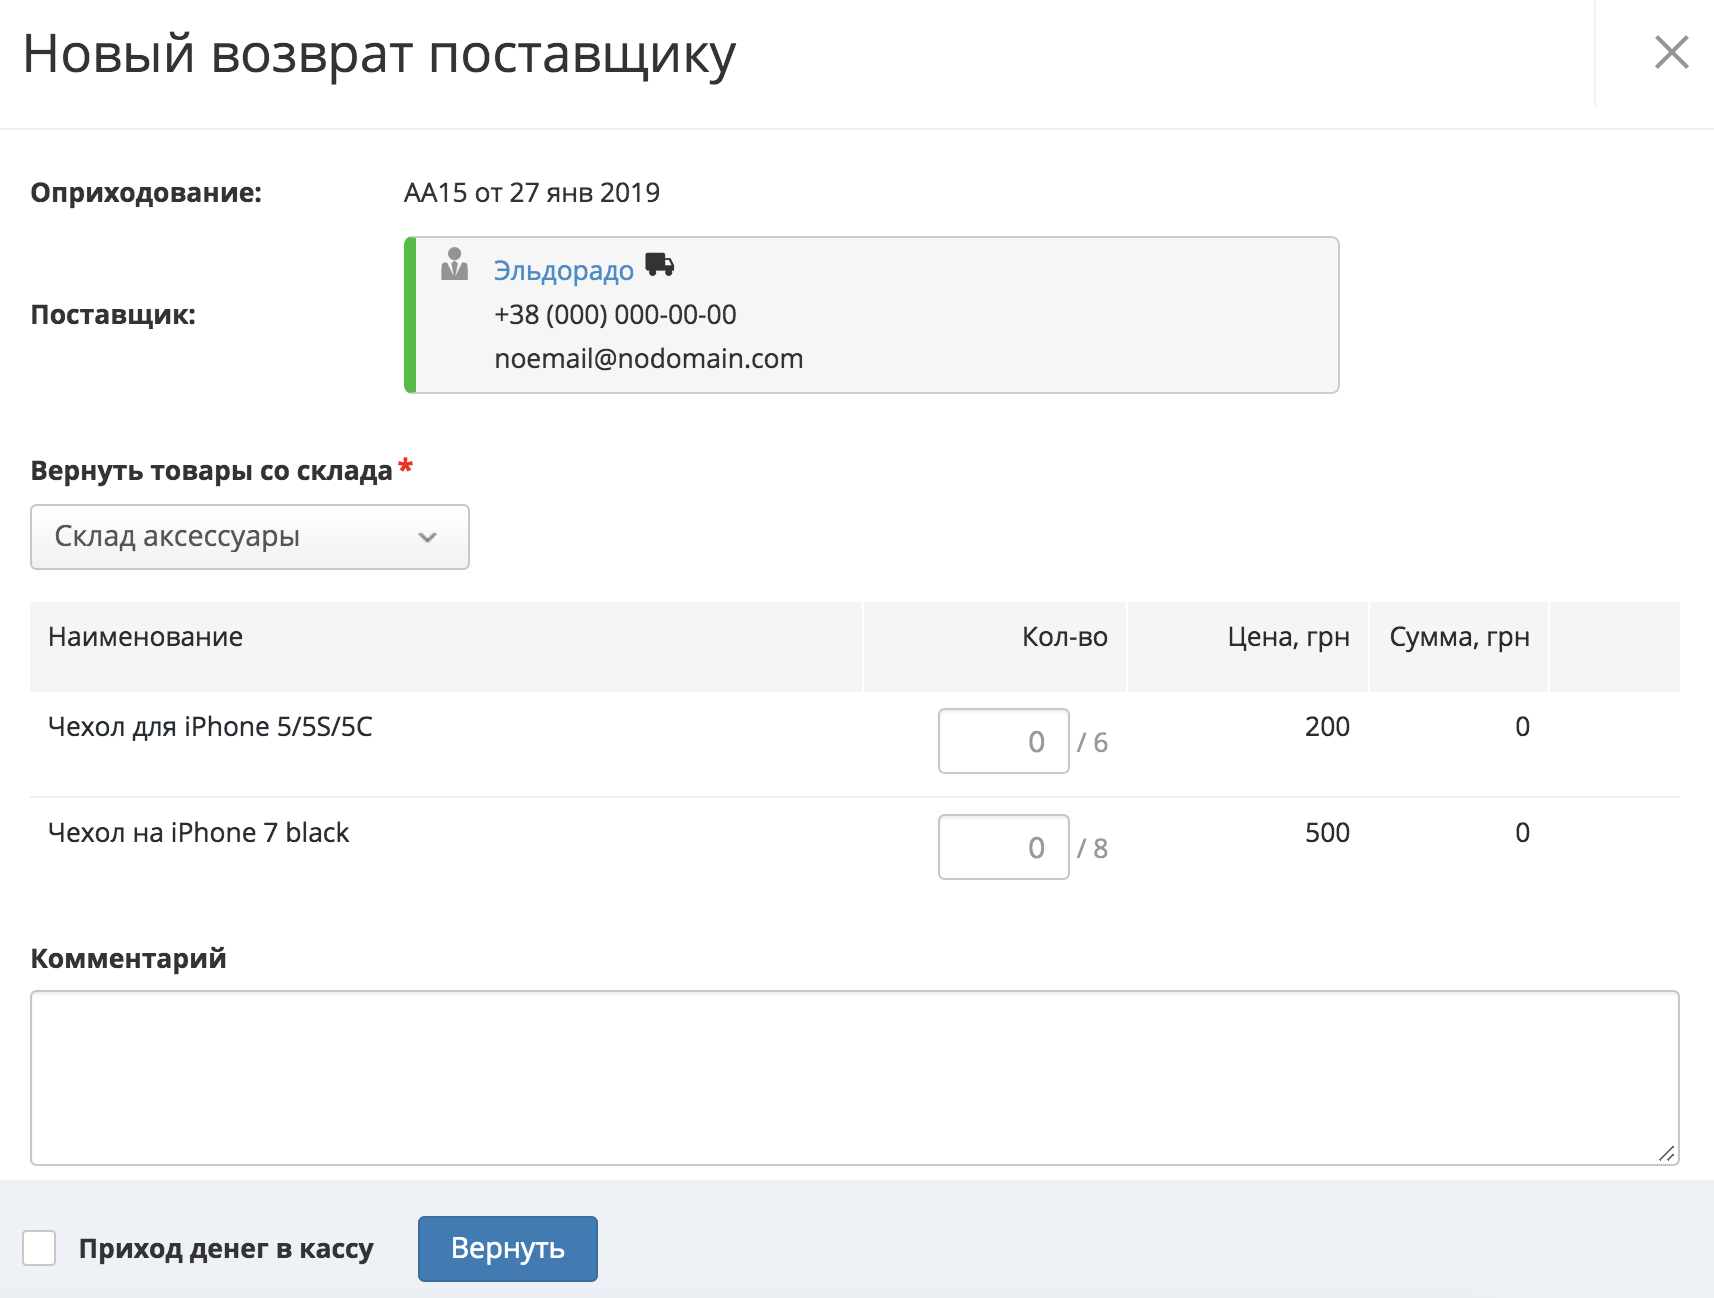 new-supplier-refund.png (36 KB)